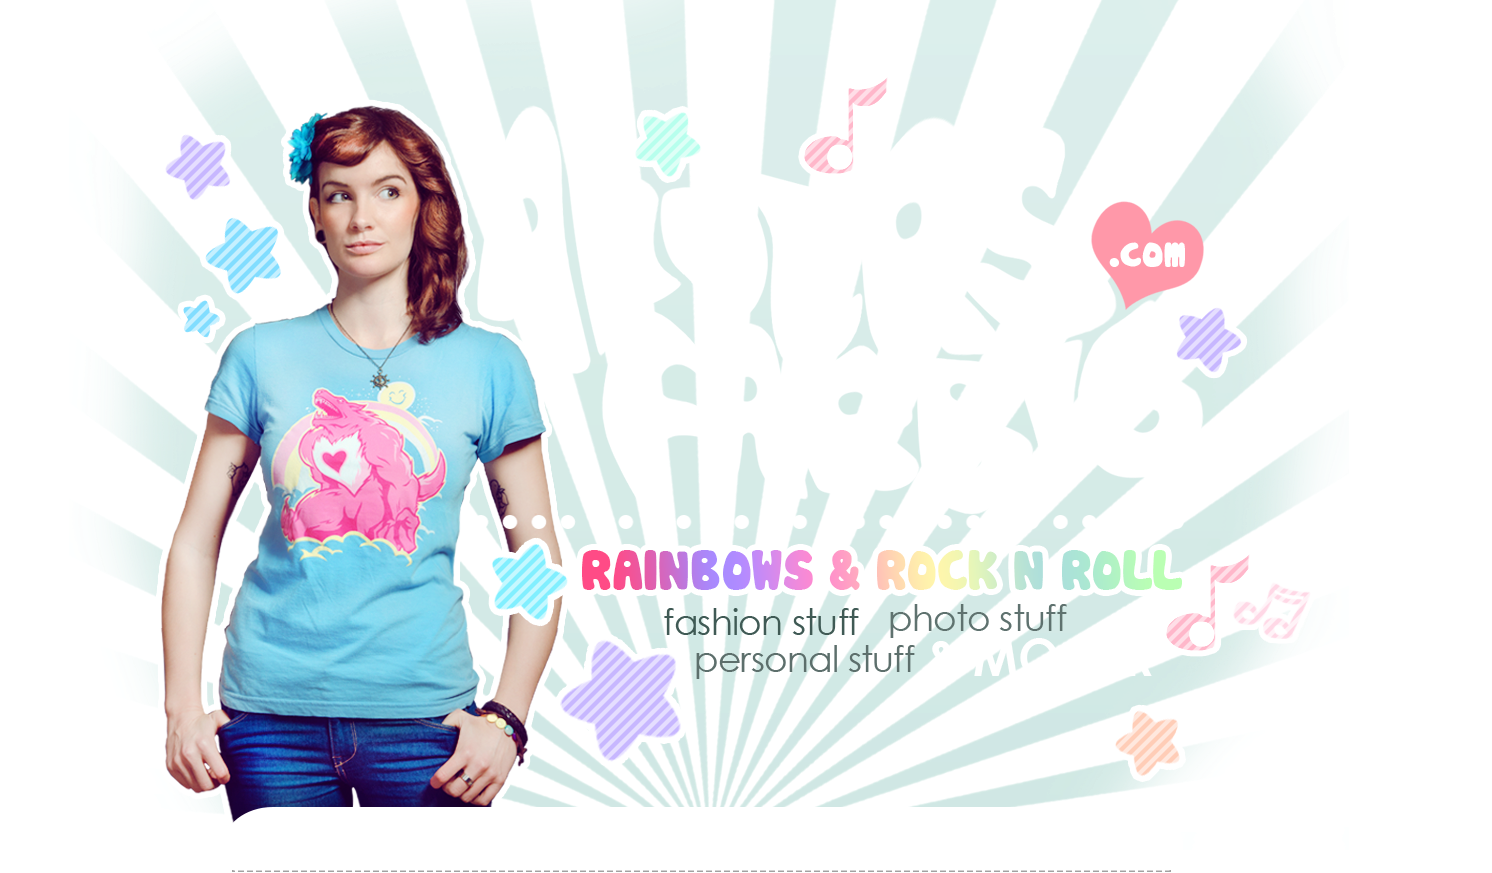 andersfarbig.com ★ RAINBOWS and ROCK N ROLL ♪♫